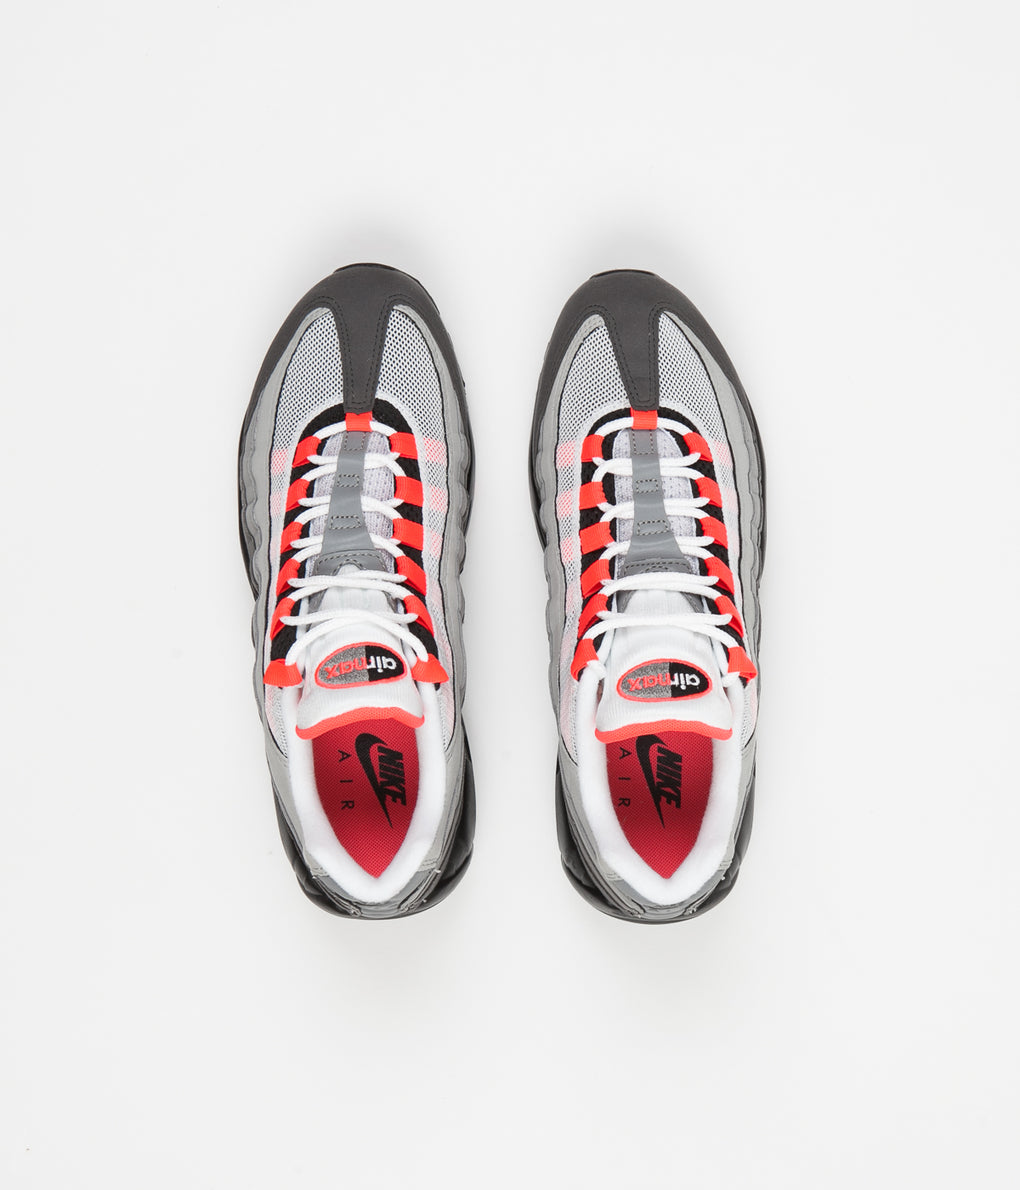 Nike Air Max 95 OG Shoes - White / Solar Red - Granite - Dust